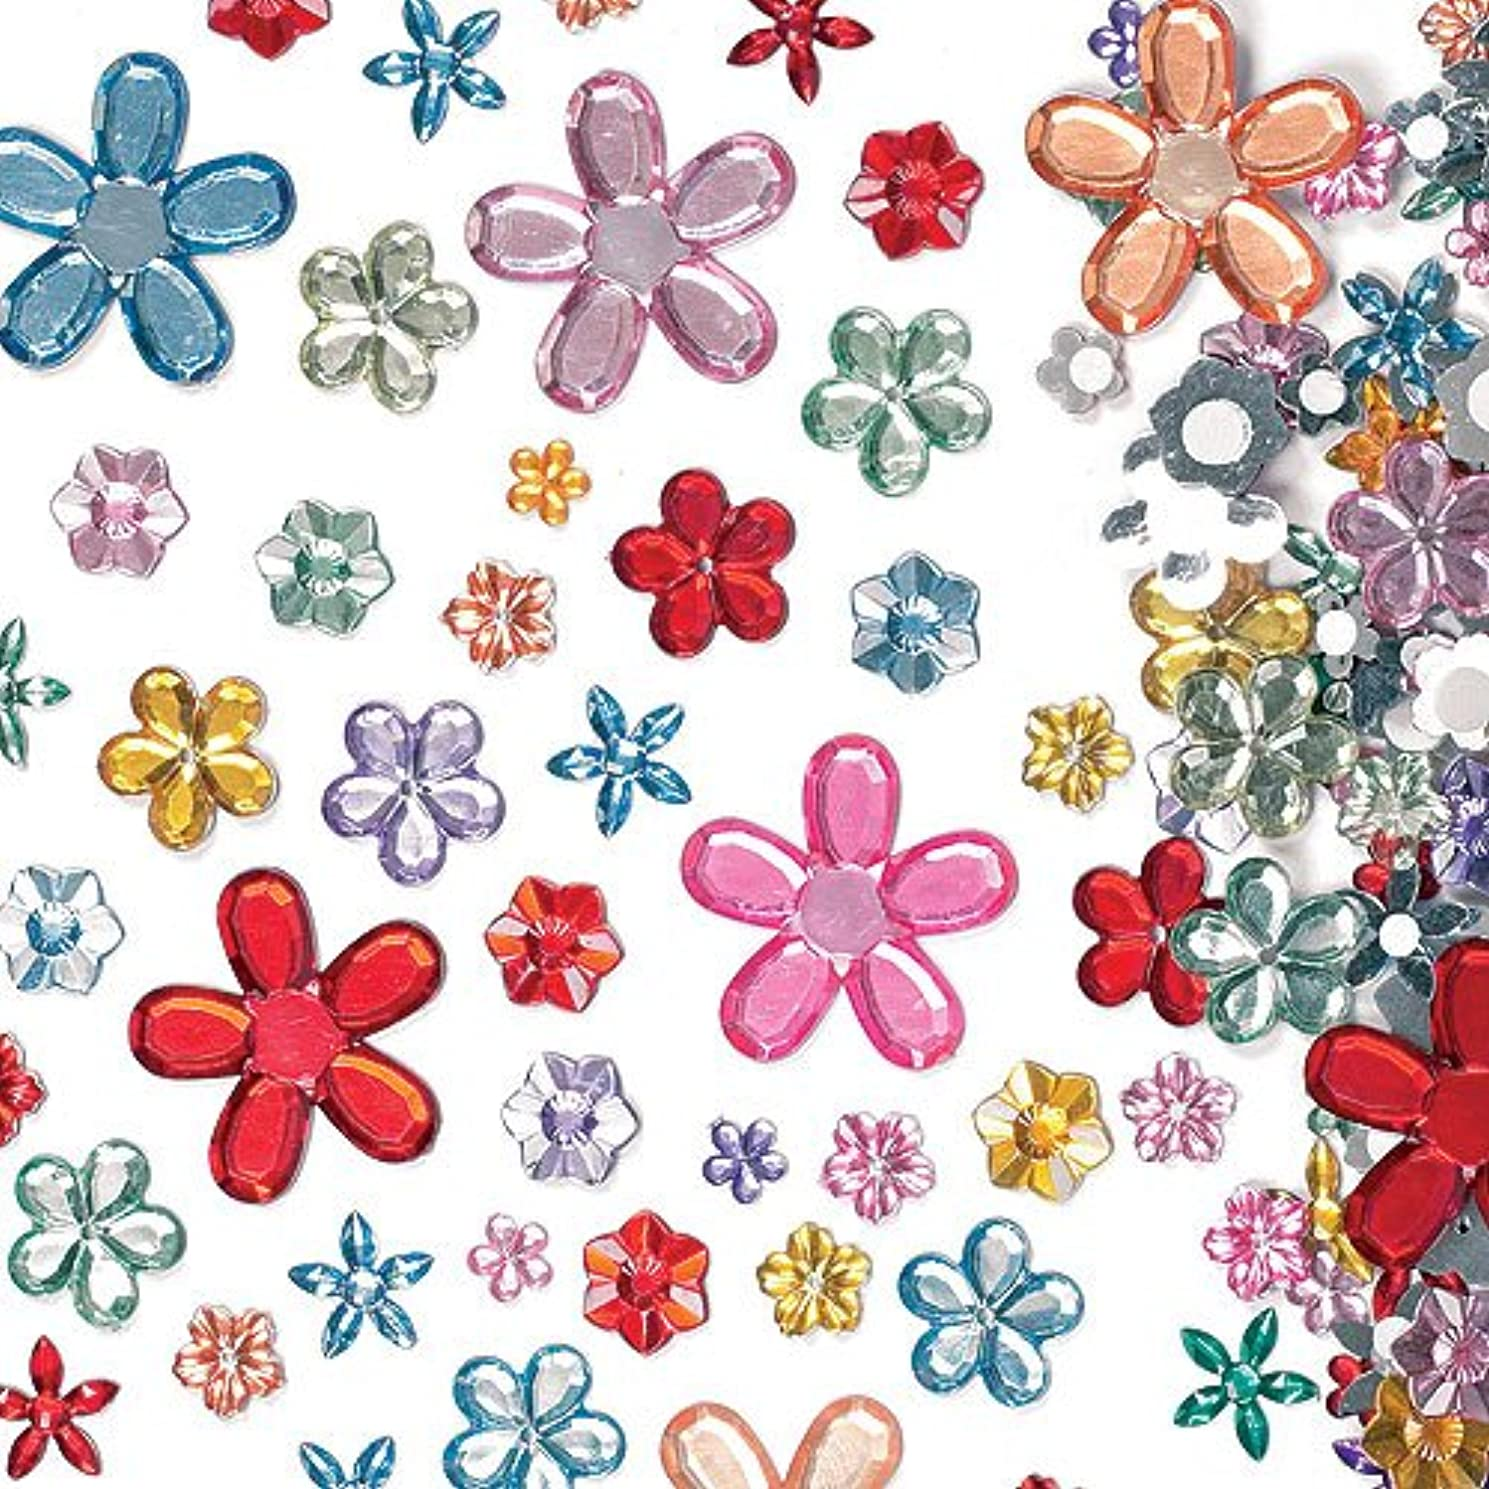 Baker Ross Self-Adhesive Acrylic Flower Jewels Assorted Designs and Sizes for Collage, Card Making, Children's Arts & Crafts (Pack of 180)